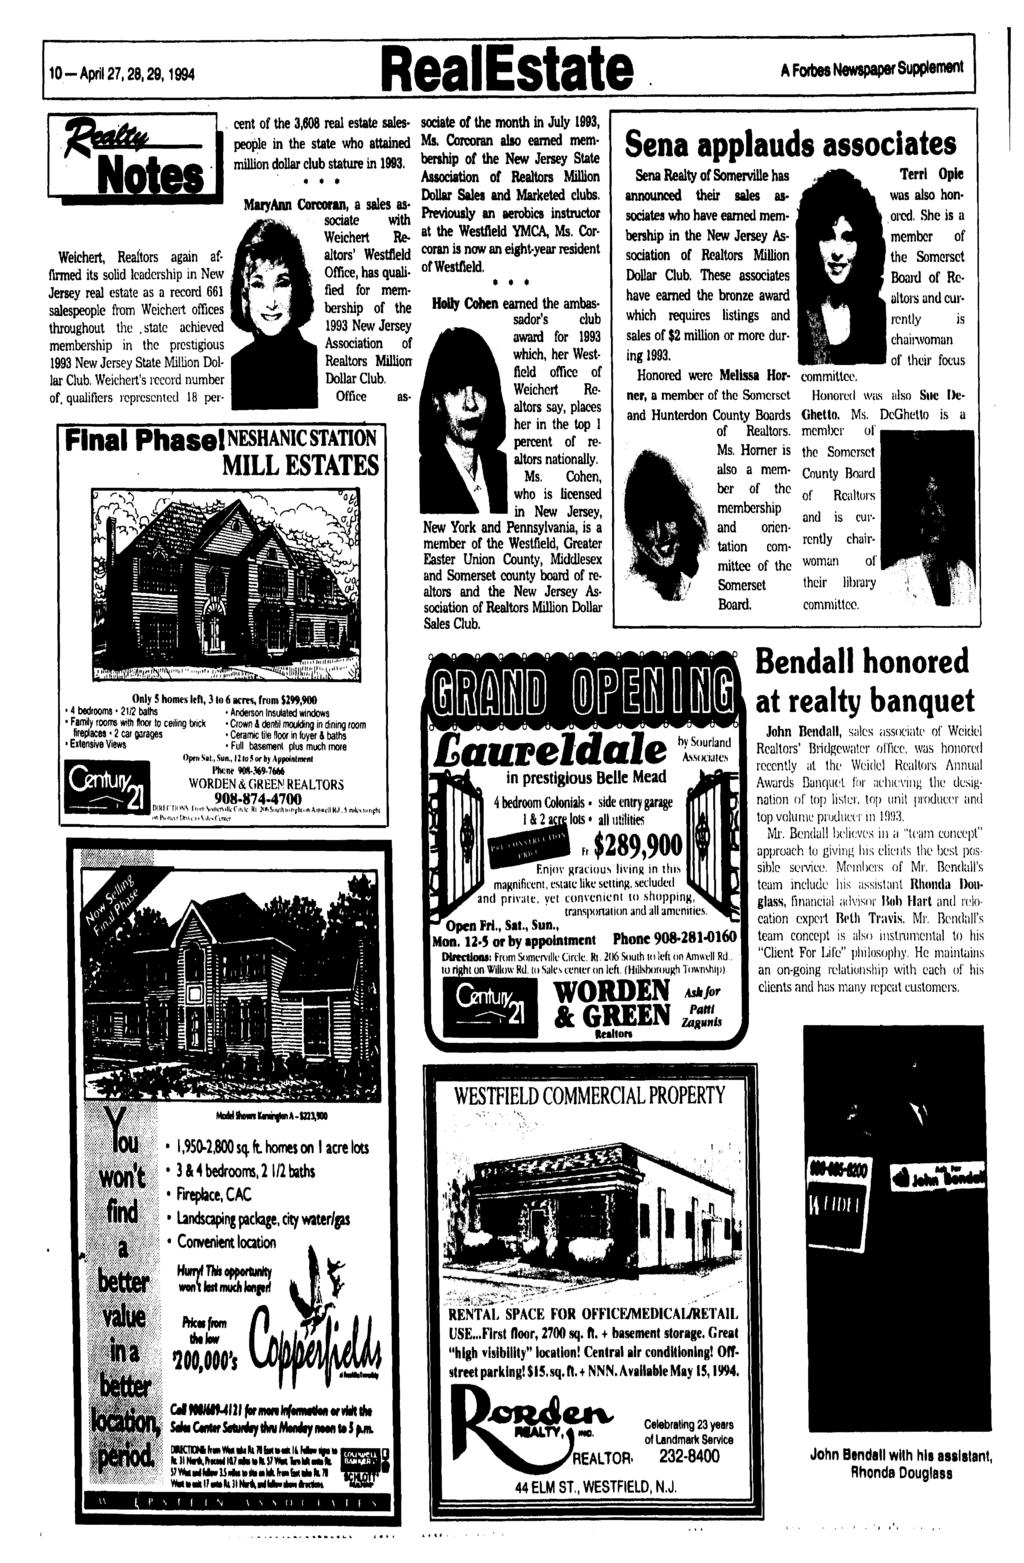 :*>» ;, 10-April 27,28,29,1994 RealEstate A Fwbes Newspaper Supplement Weicheit Realtors again affirmed its solid leadership in New Jersey real estate as a record 661 salespeople from Weichert